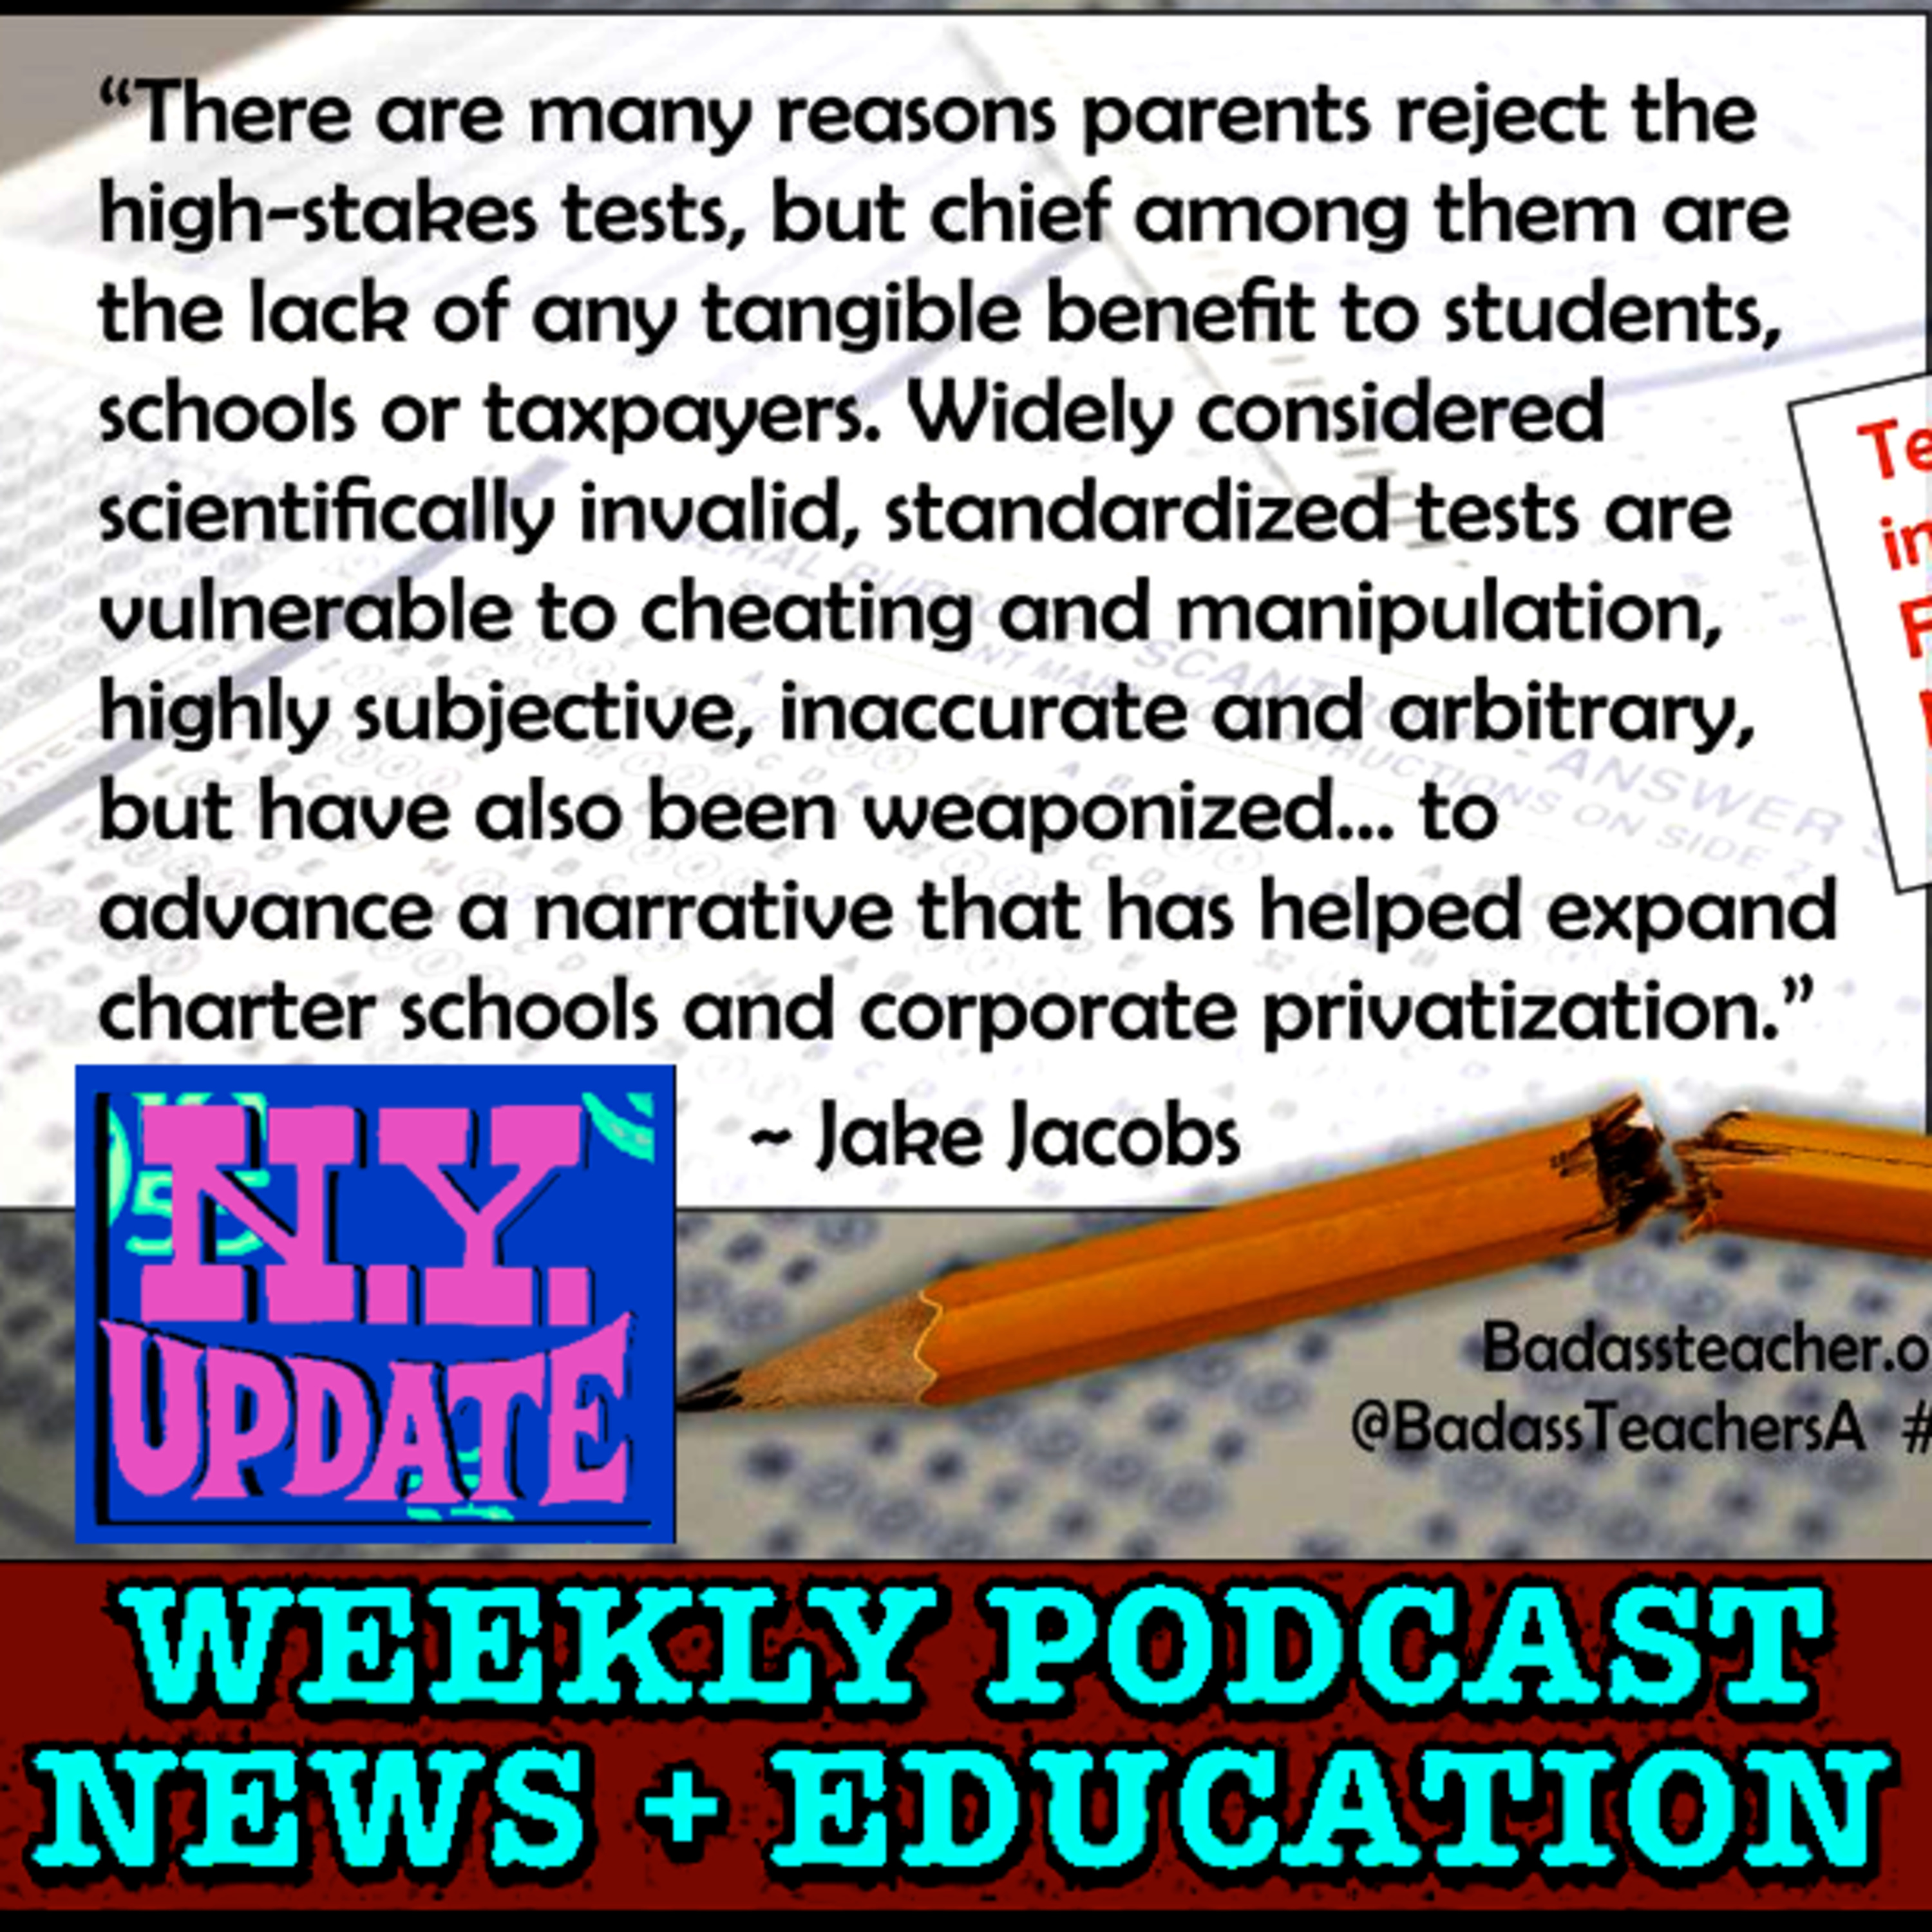 NY COMMISSIONER SPEAKS: Audio of Education Commissioner Elia trying to defend her crashing, wasteful NY state tests. Originally aired 04-09-19.